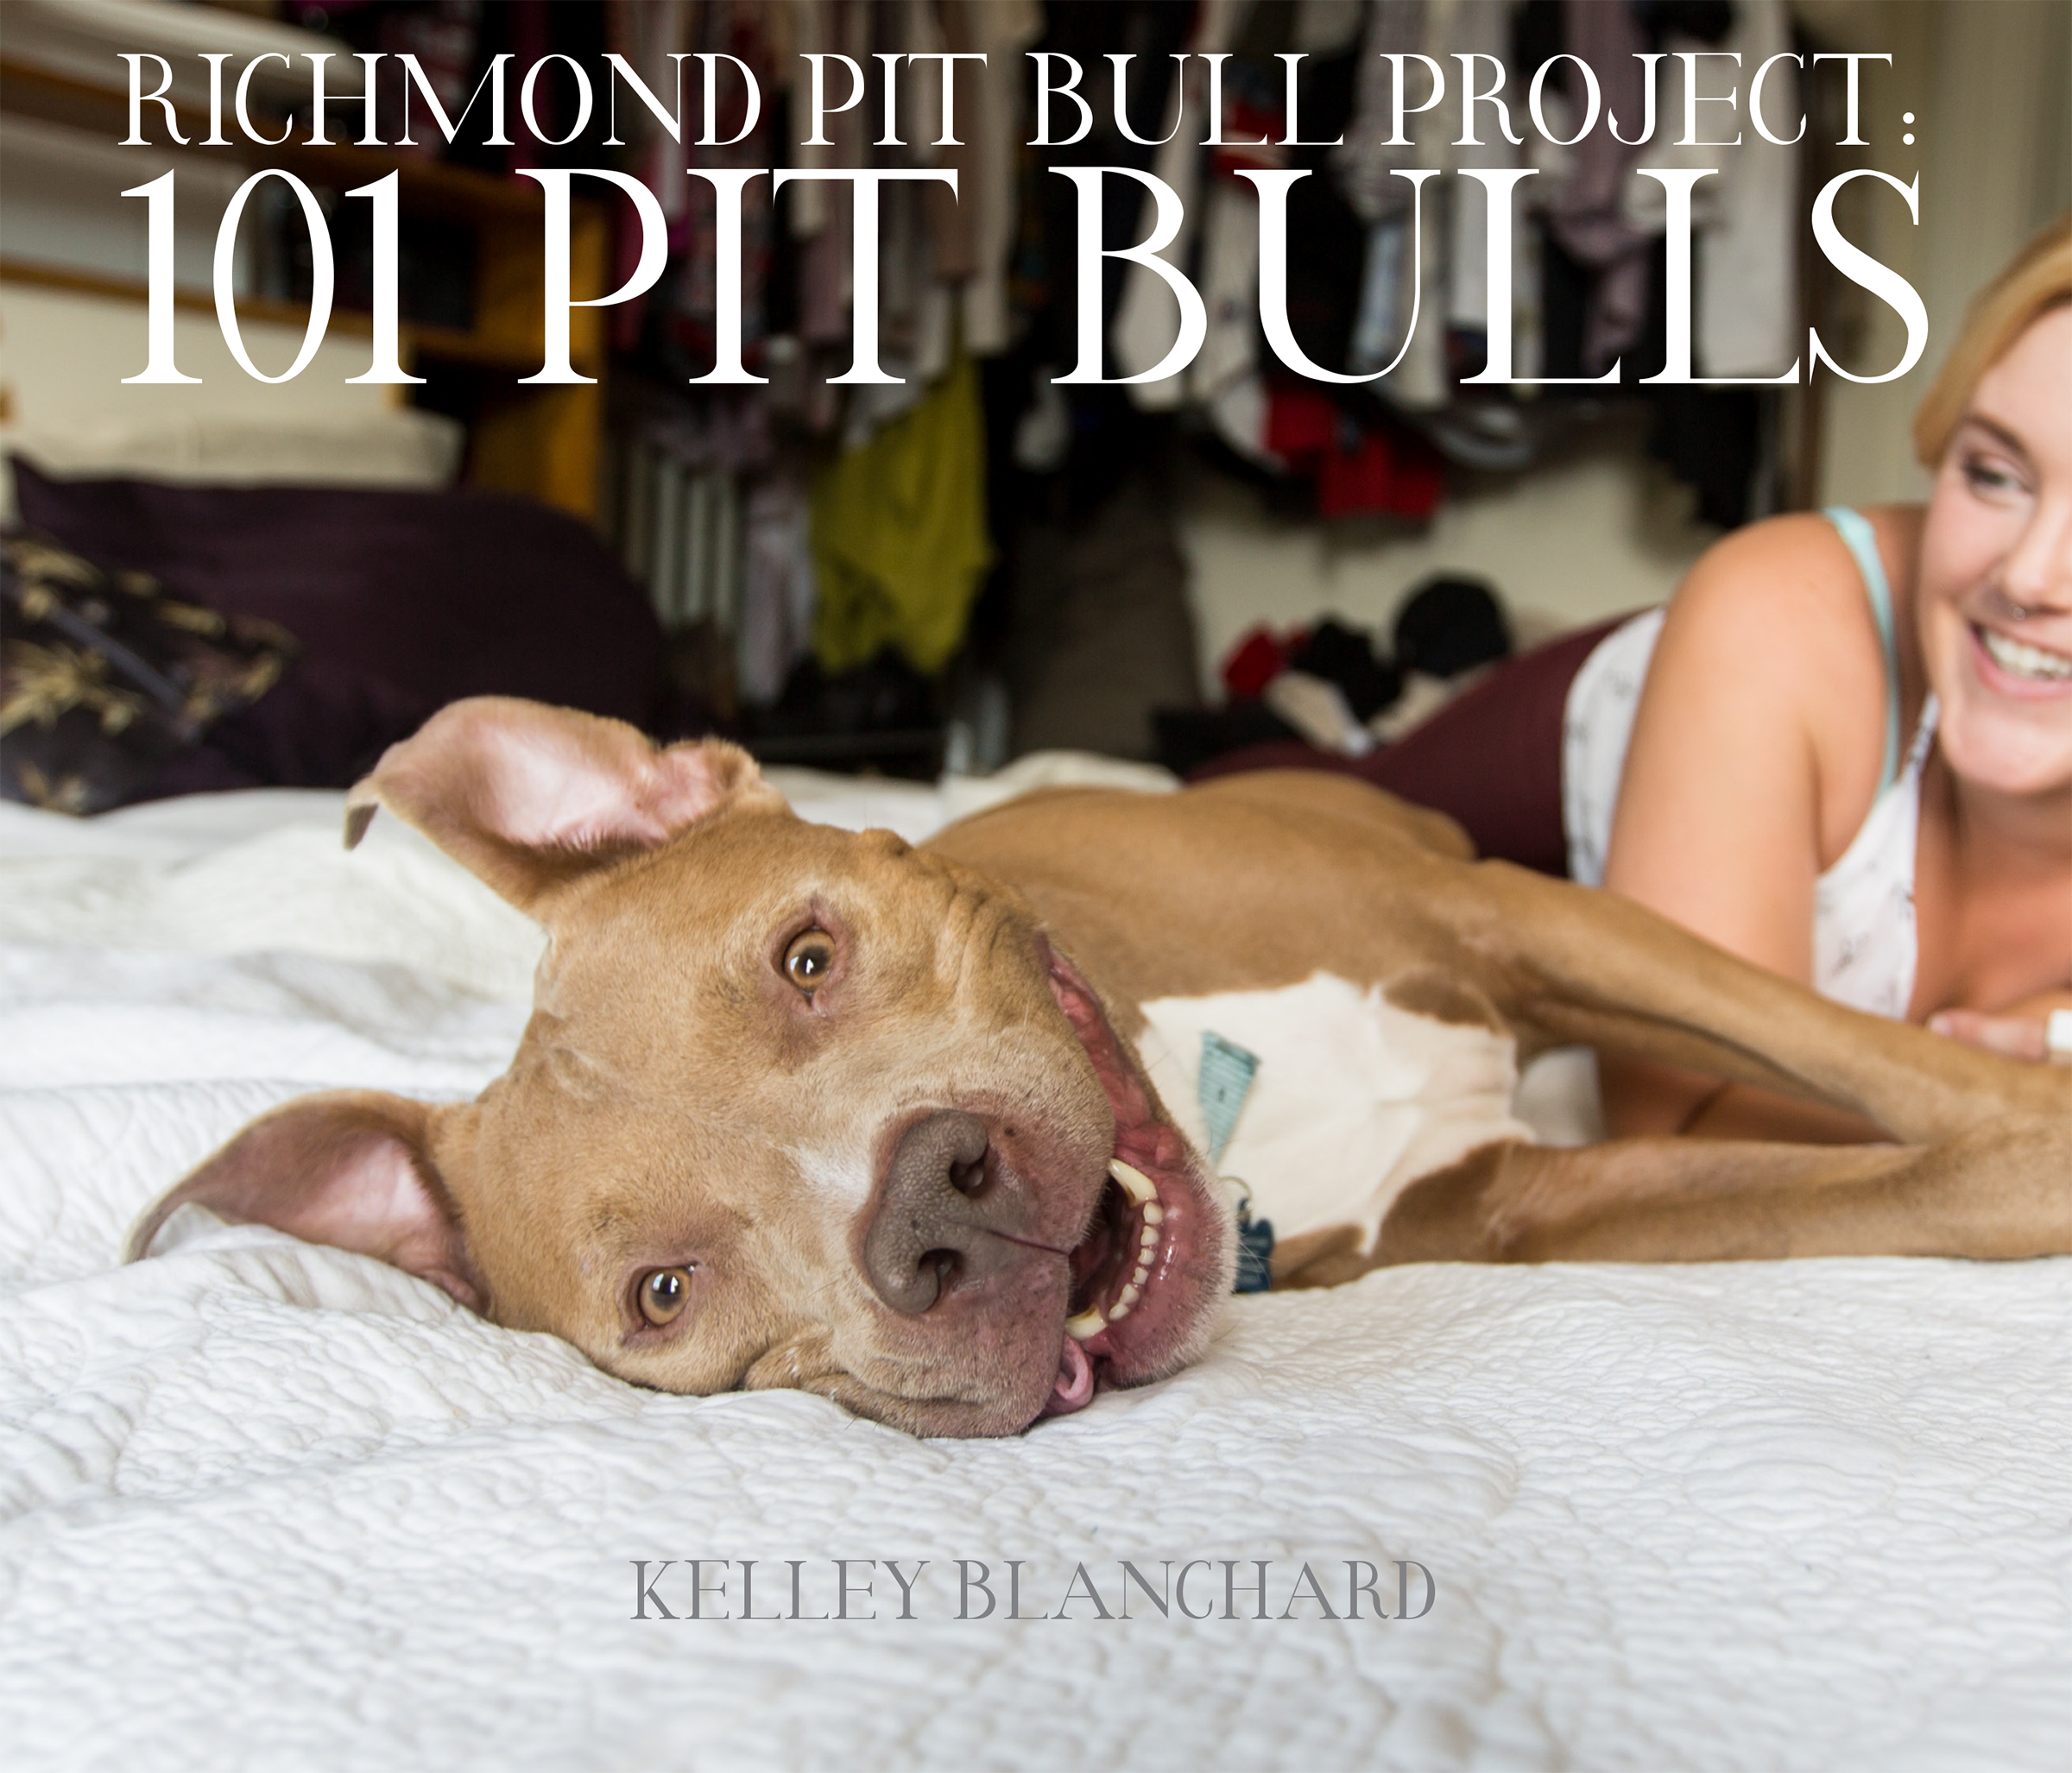 Richmond Pit Bull Project: 101 Pit bulls - Hard Copy $40 (Back in stock soon!)Volume 1 celebrates local pit bull residents and their families, rescue groups and dog friendly businesses in Richmond, Virginia.